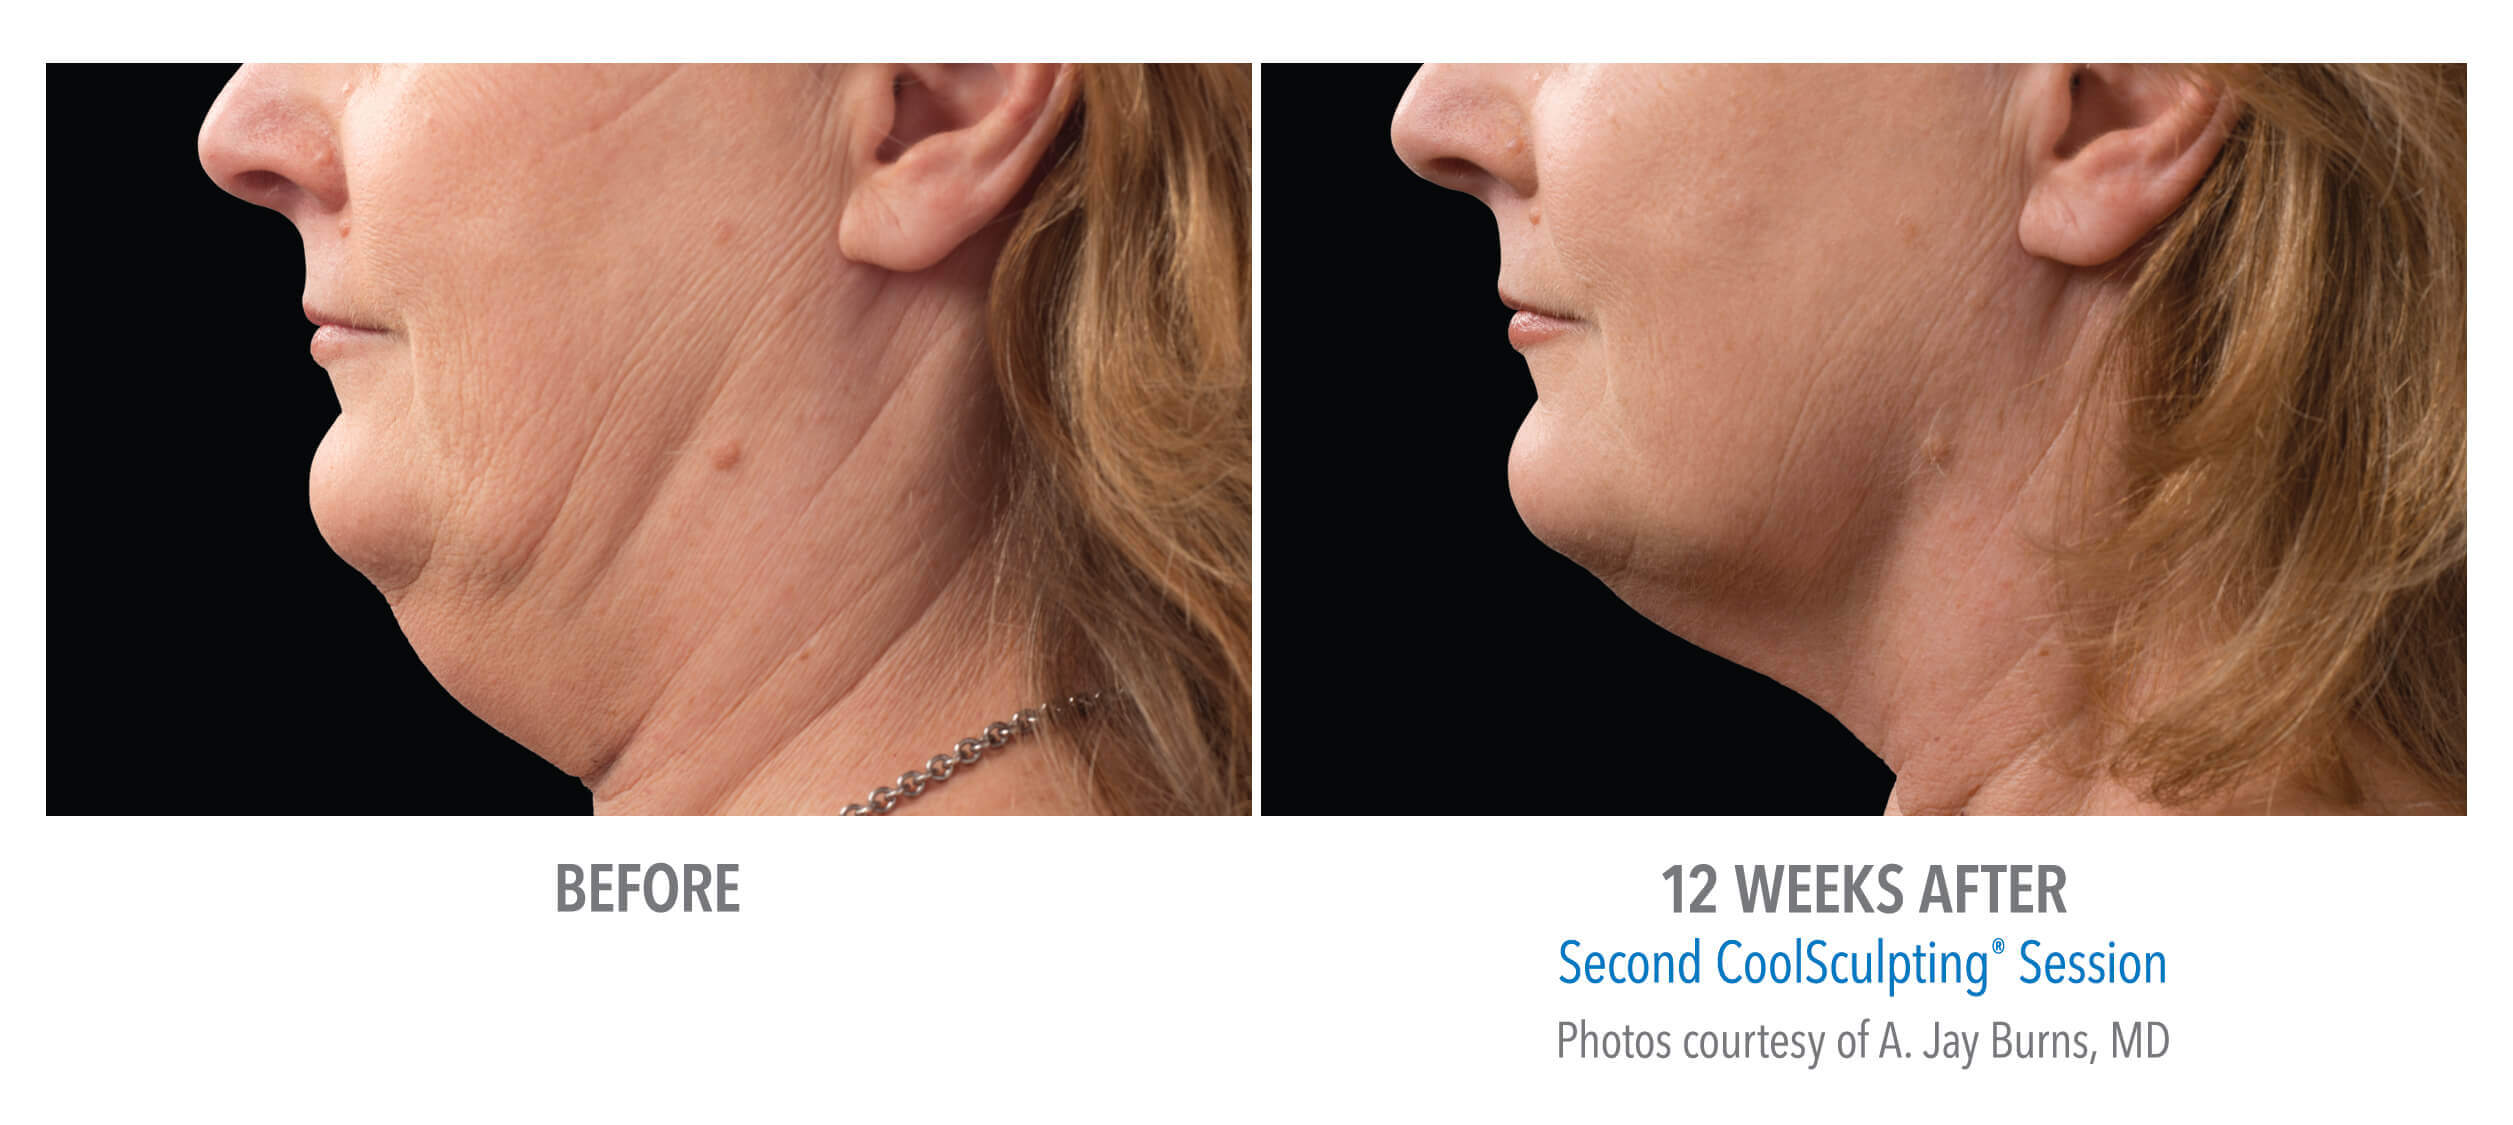 CoolSculpting to Reduce Chin Fat